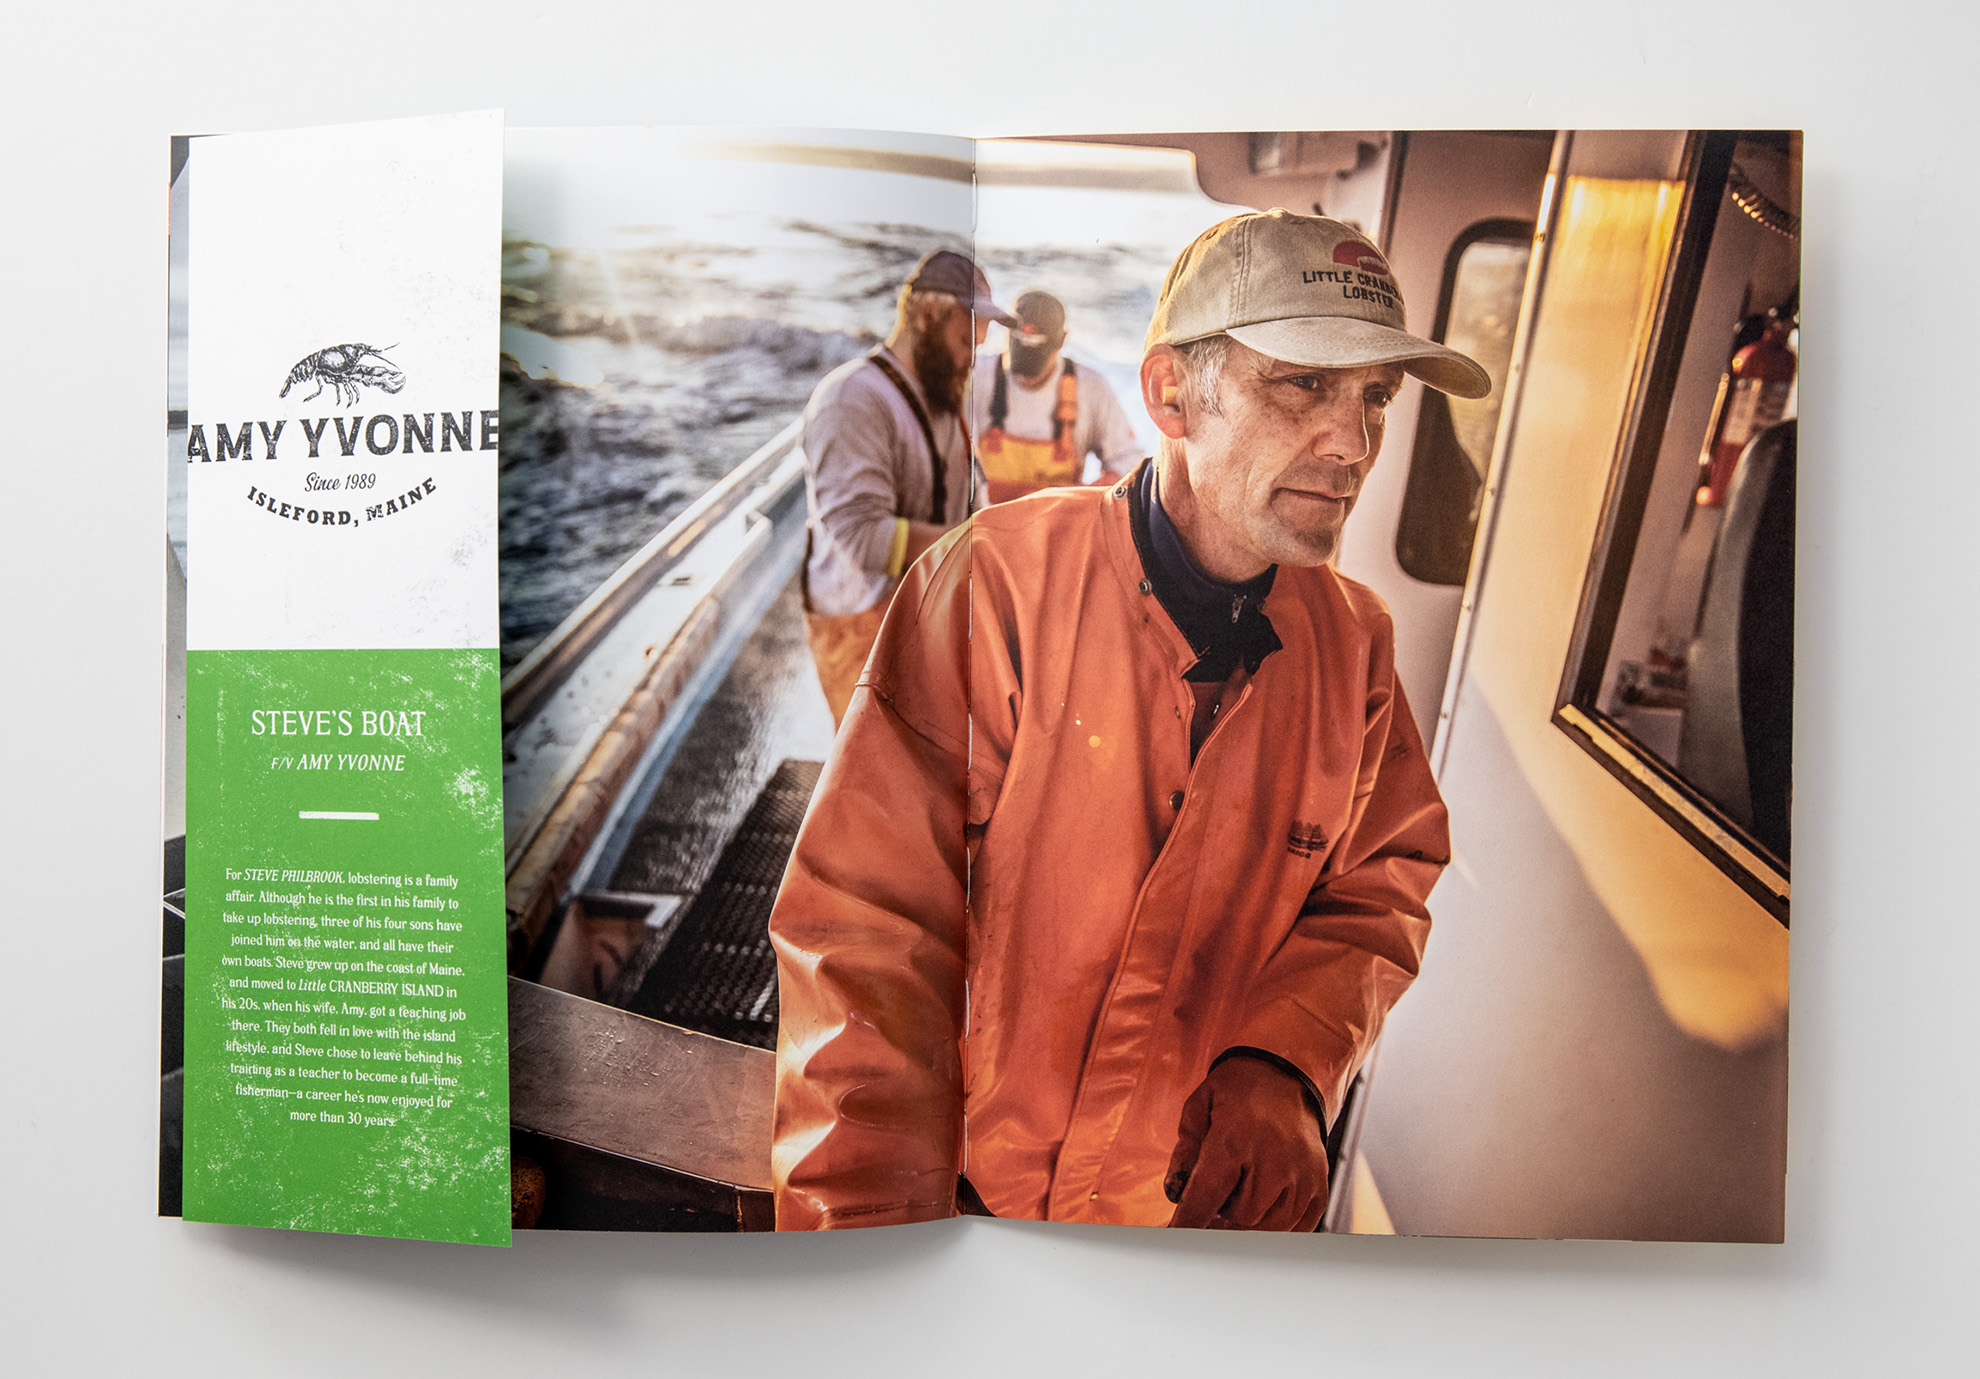 Tadd Myers released promo booklet of the Lobstermen of Little Cranberry Island featuring Steve